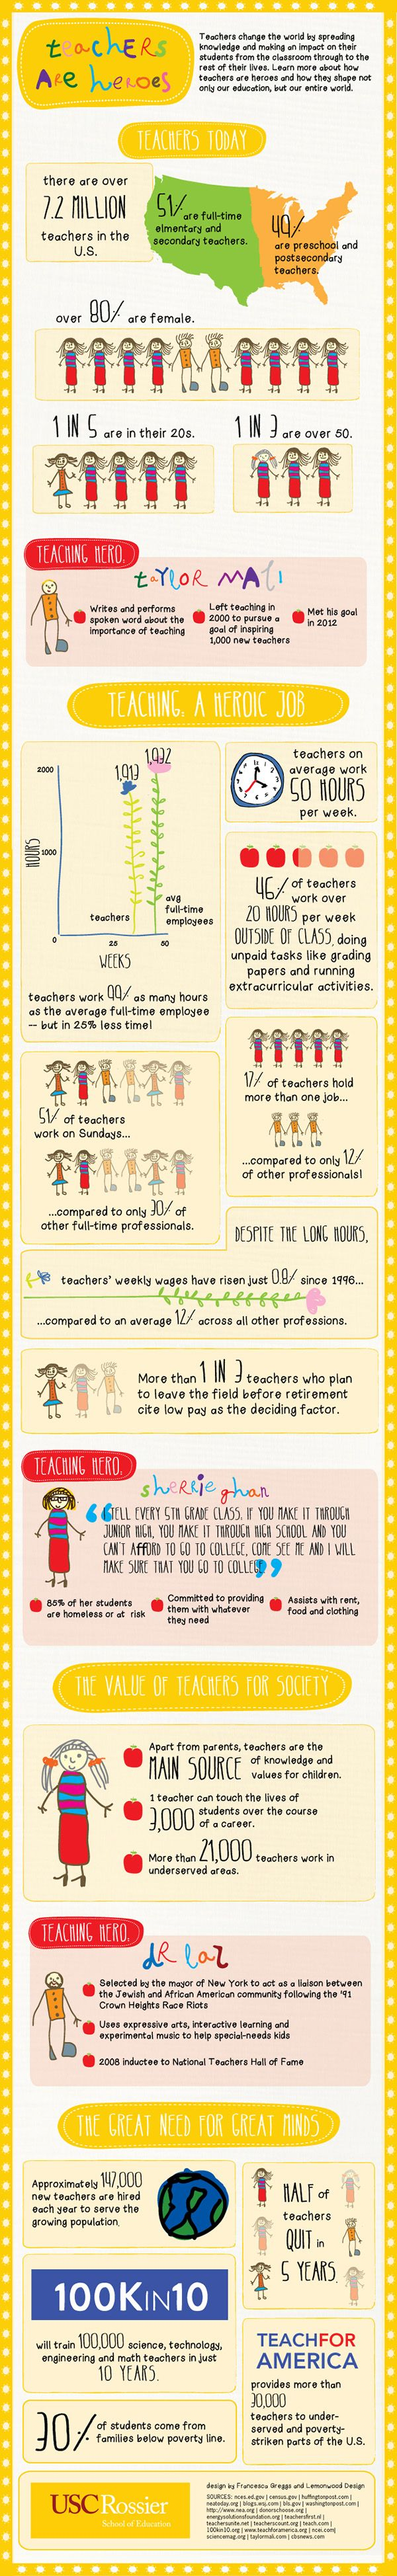 best images about appreciate teachers view video we already knew teacher were superheroes but here s some insight as to why